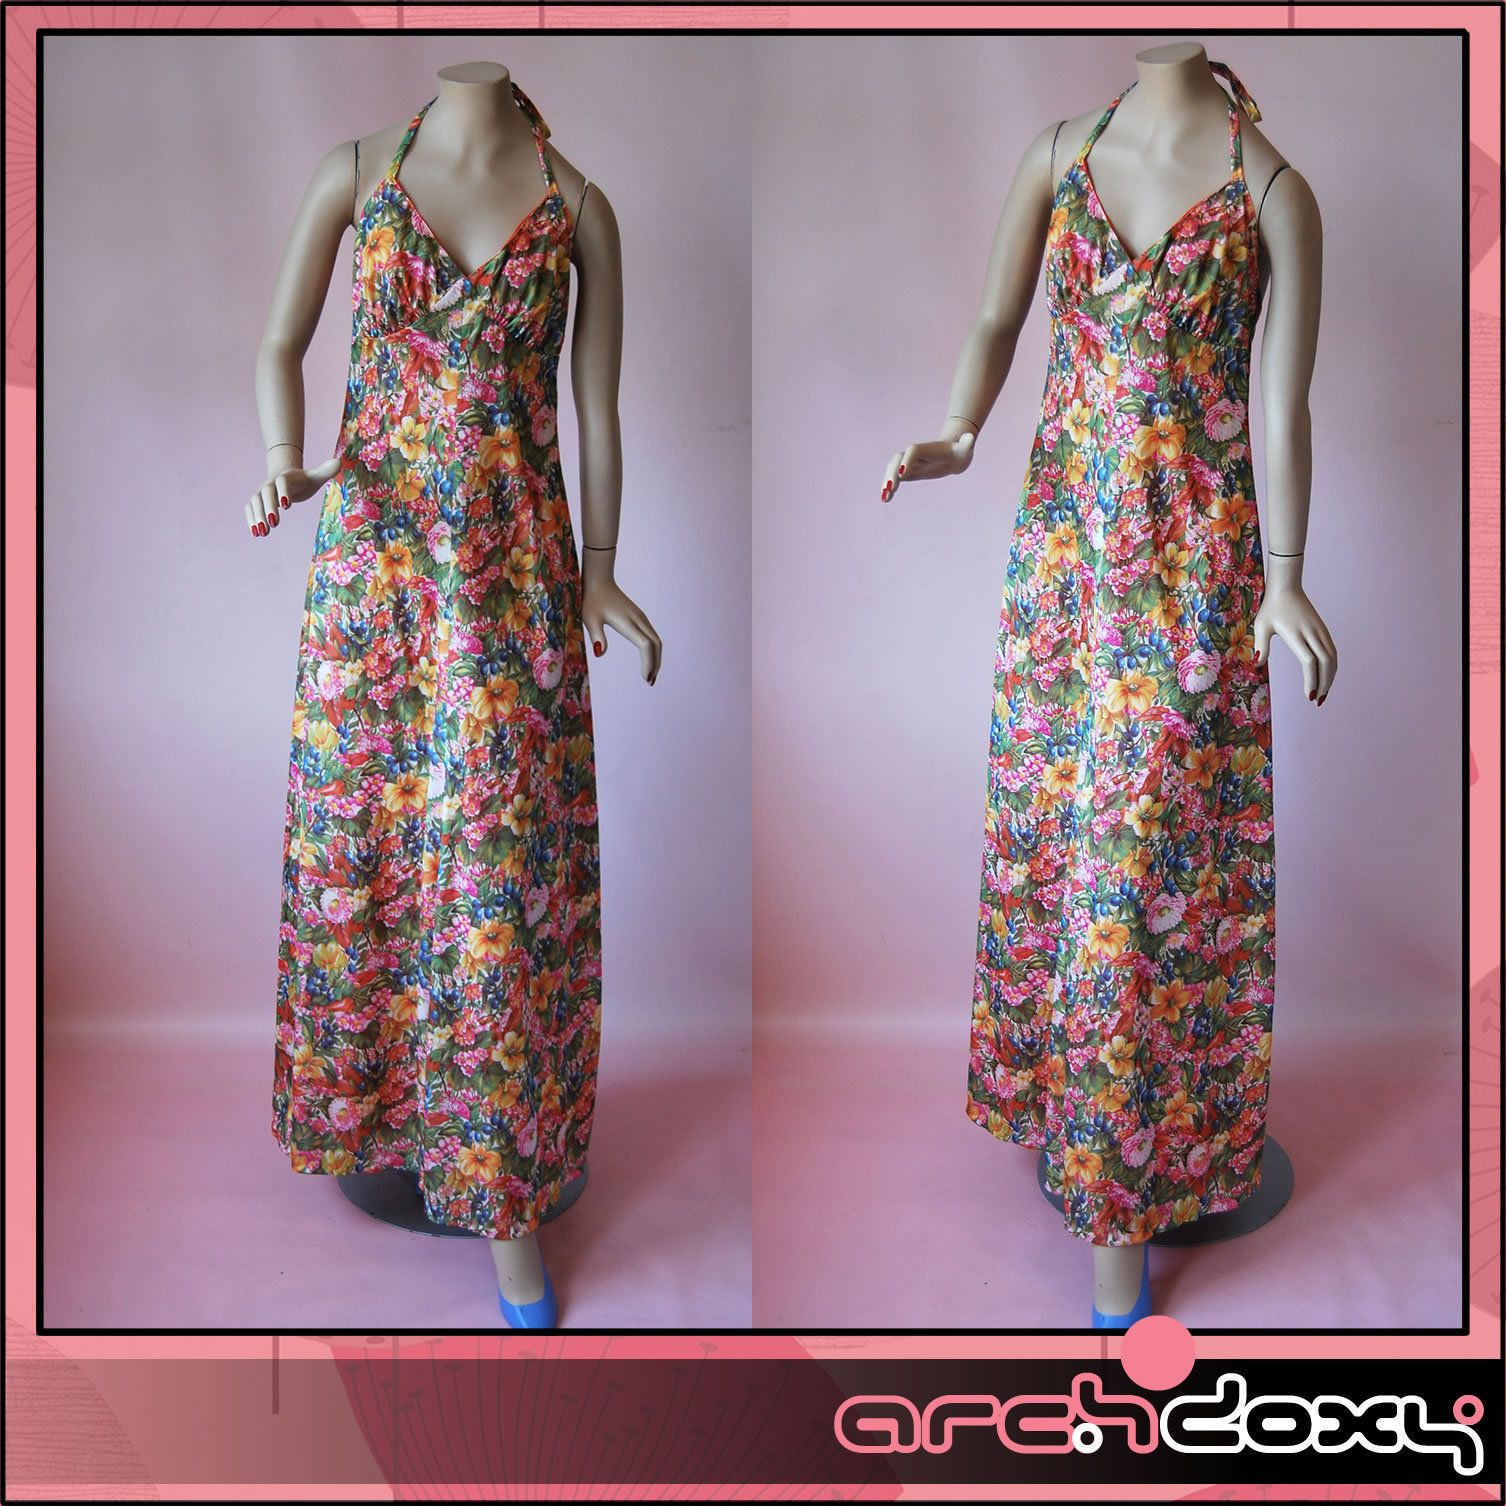 Vintage 1960s Superb Saucy Empire Floral Shaped Bohemian Silky Maxi Dress #vintage  http://www.ebay.co.uk/itm/Vintage-1960s-Superb-Saucy-Empire-Floral-Shaped-Bohemian-Silky-Maxi-Dress-14-/282051571613?ssPageName=STRK:MESE:IT